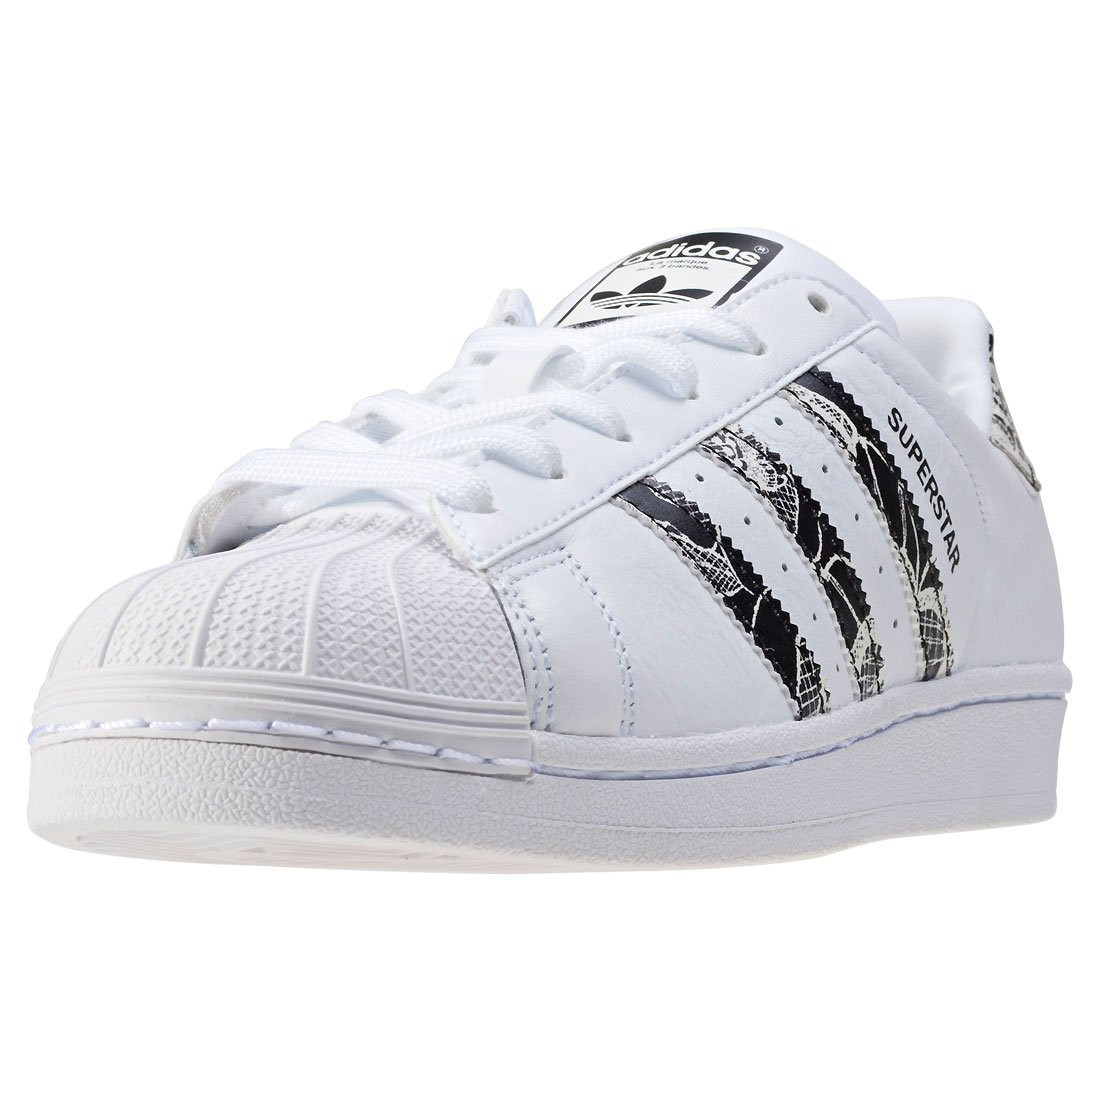 Femme Pas Superstar Basket Adidas Amazon Cher qSGLUpzMjV